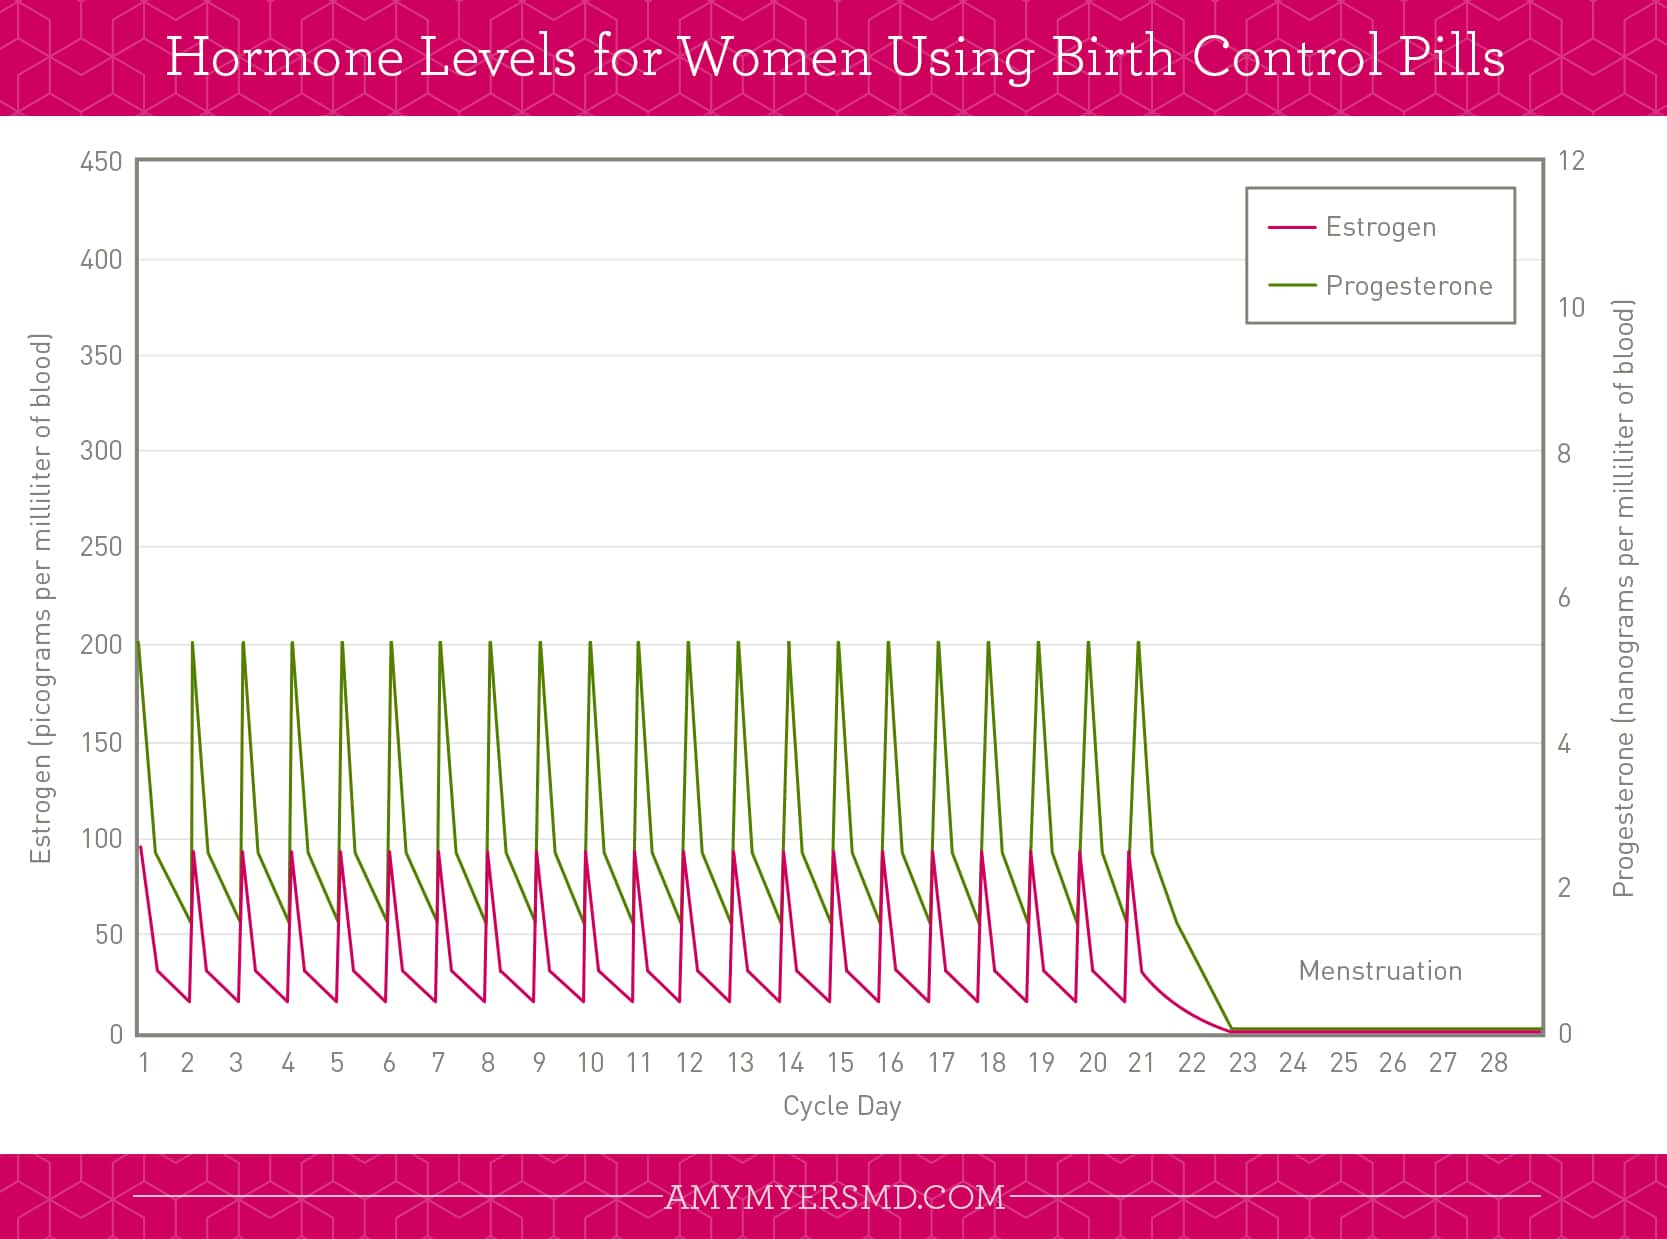 Hormone Levels for Women Using Birth Control Pills